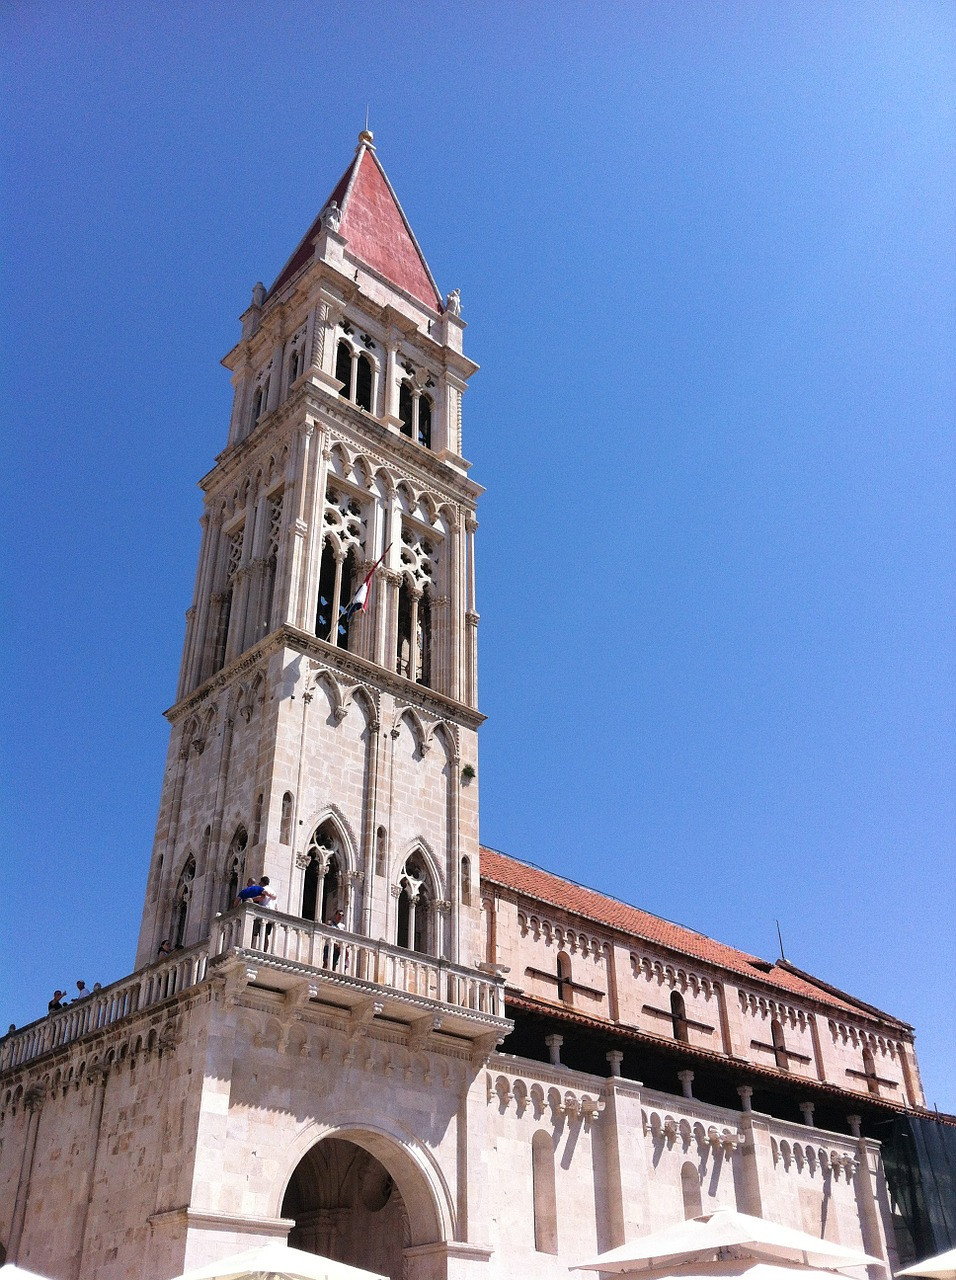 the UNESCO-listed Trogir Cathedral, with Venetian style architecture